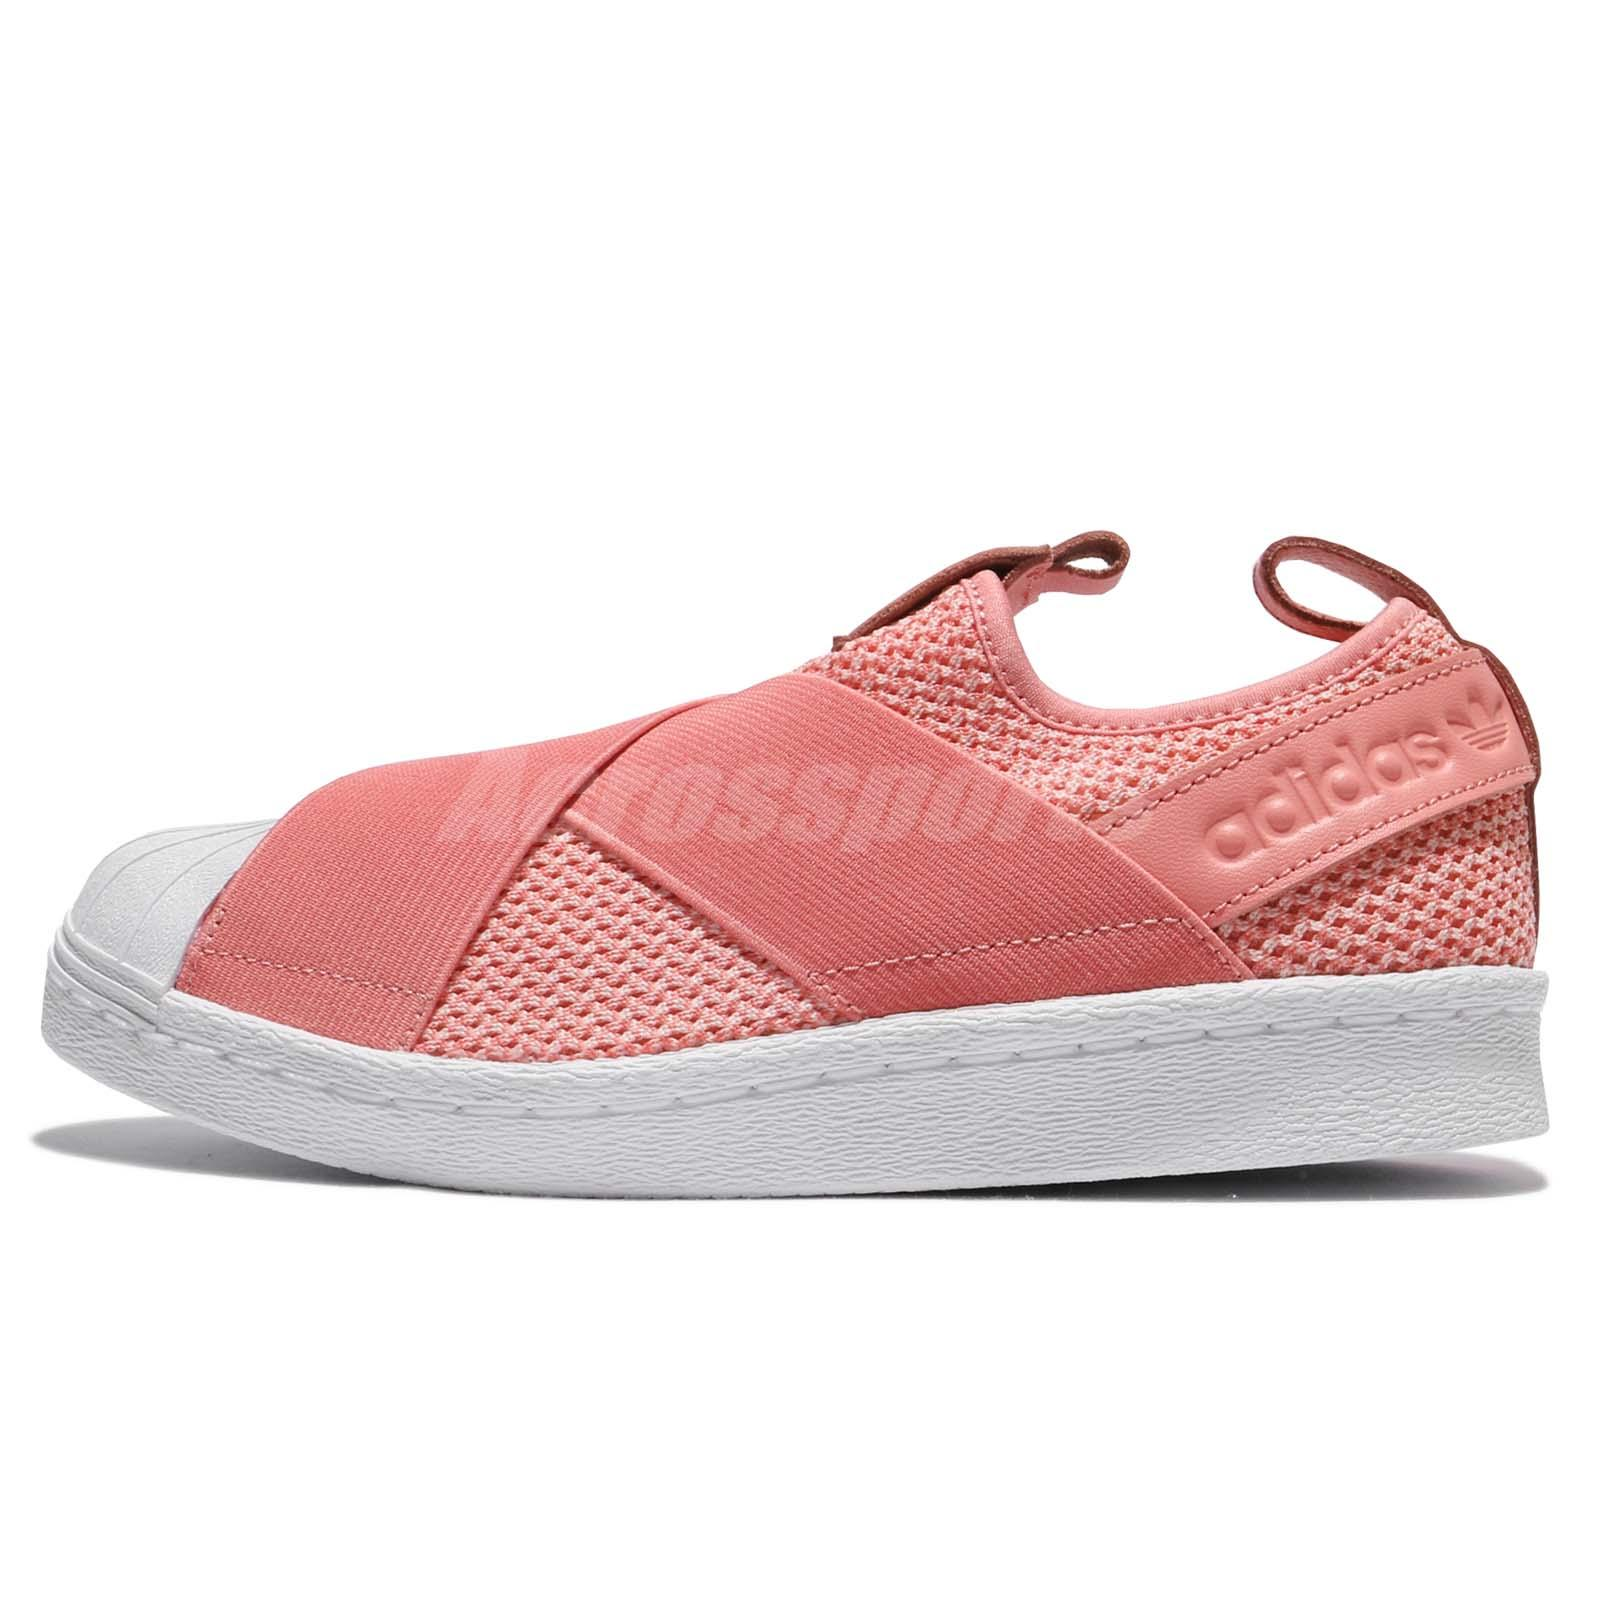 adidas Originals Superstar SlipOn W Strap Tactile Rose White Women Shoes  BY2950